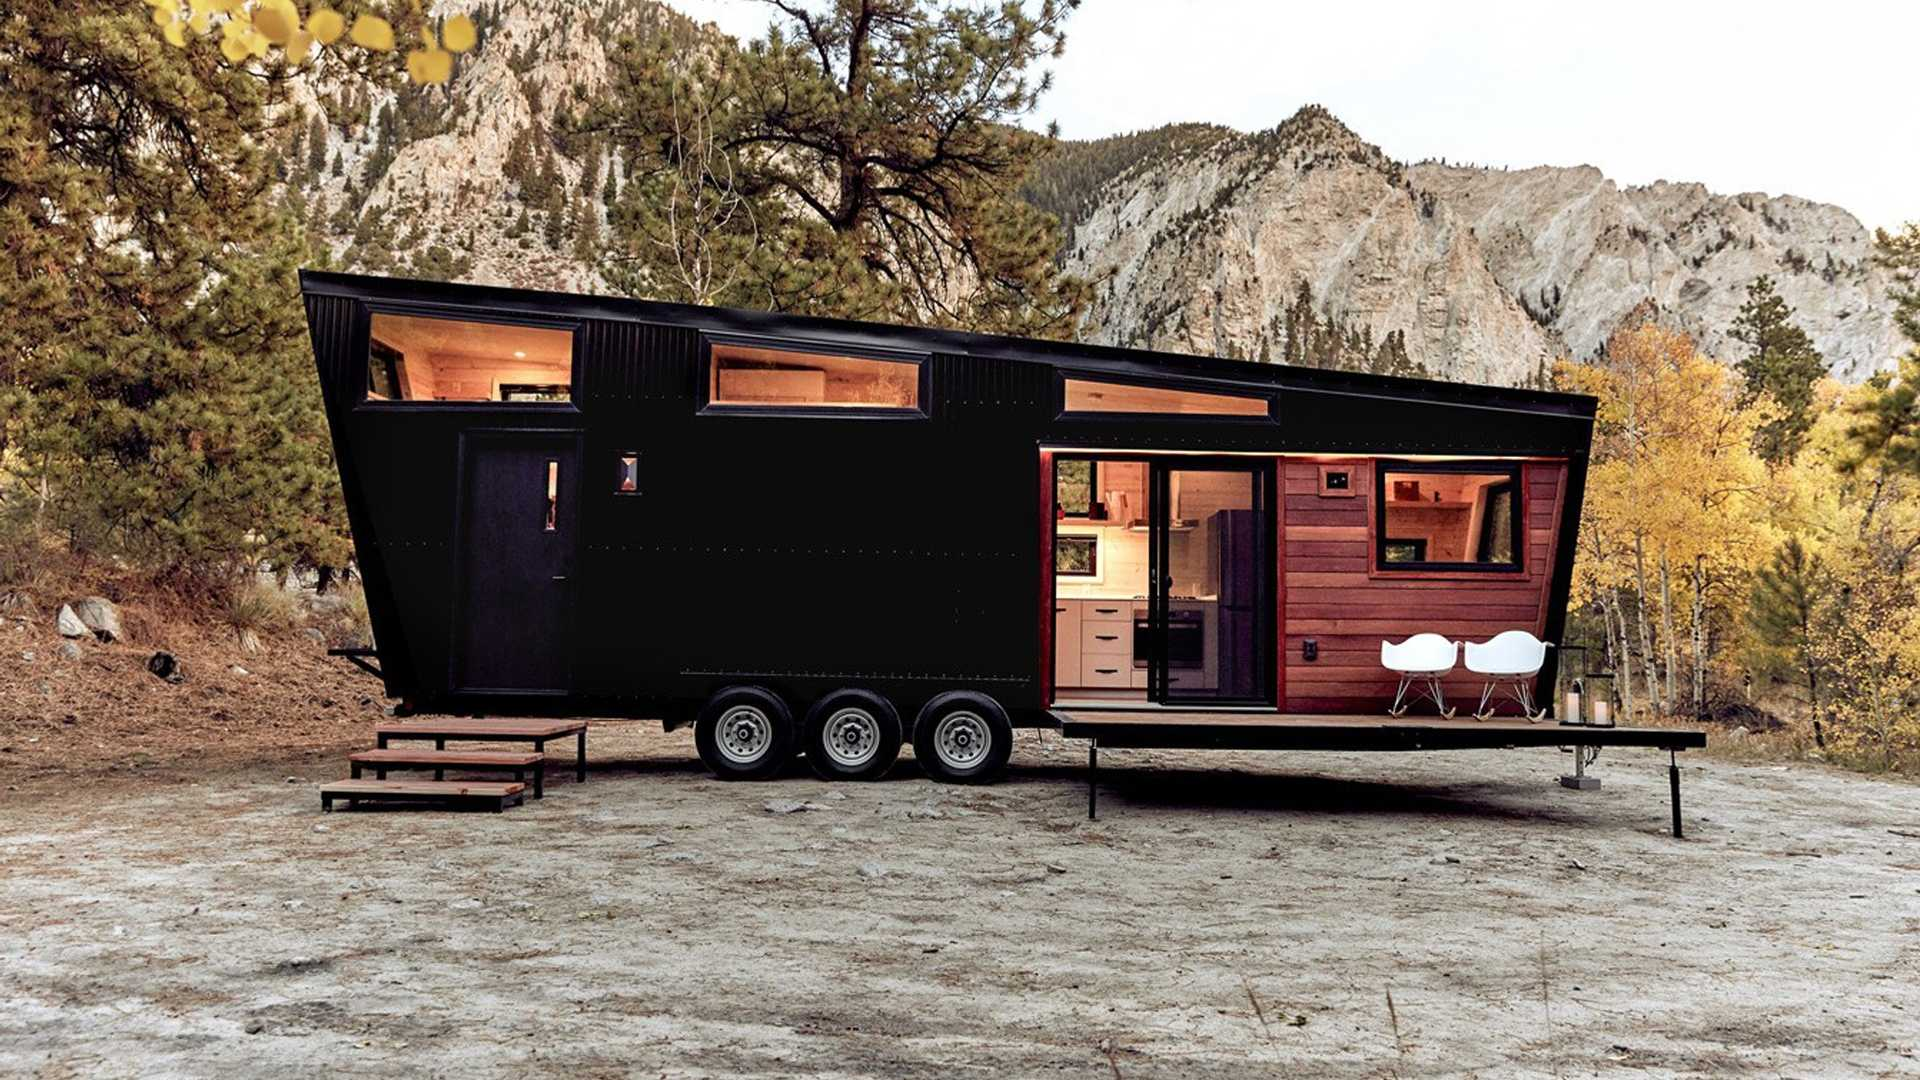 Land Ark Dr Is A Luxury RV Trailer Like We've Never Seen Luxury Rv Mobile Home on custom luxury rv, most expensive luxury rv, mobile luxury home, top 10 luxury rv, gulf shores luxury rv,